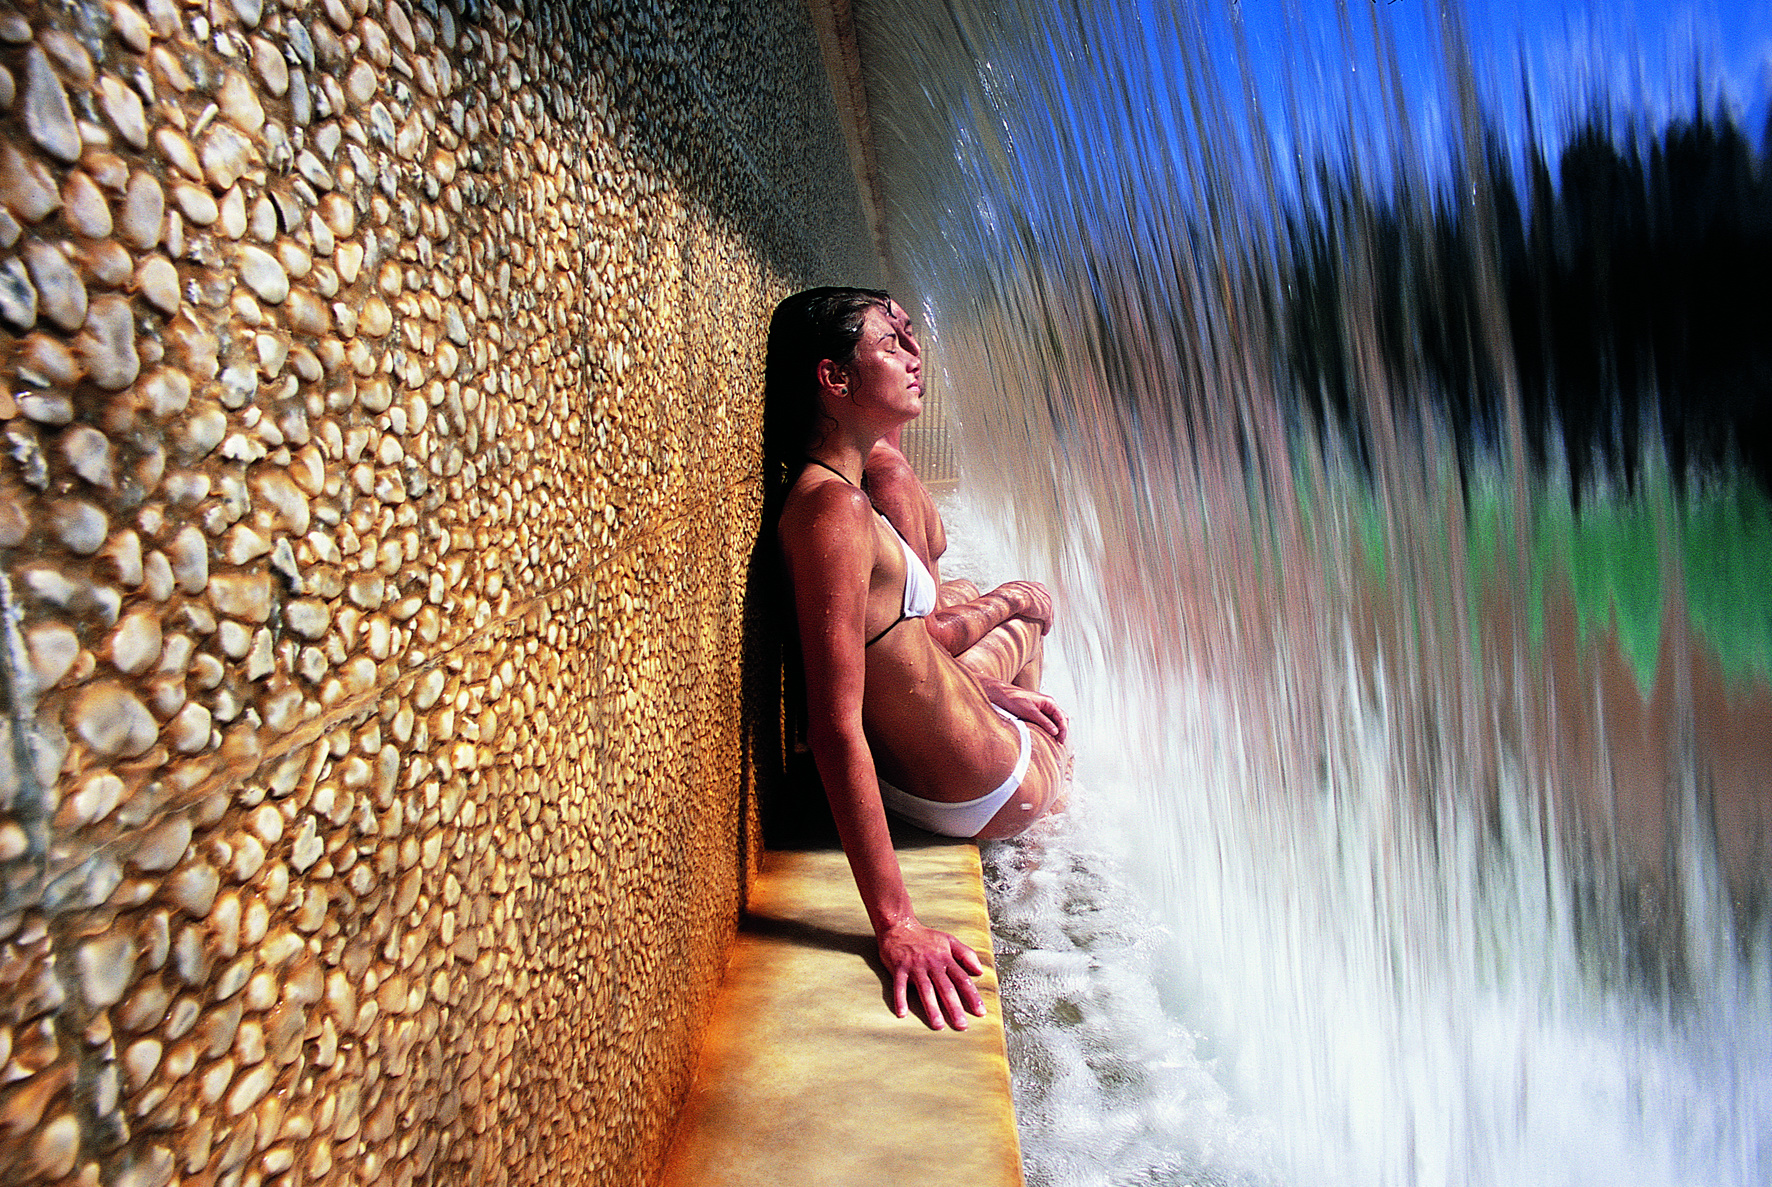 Fonteverde_Natural Spa_Thermal Pool Waterfall